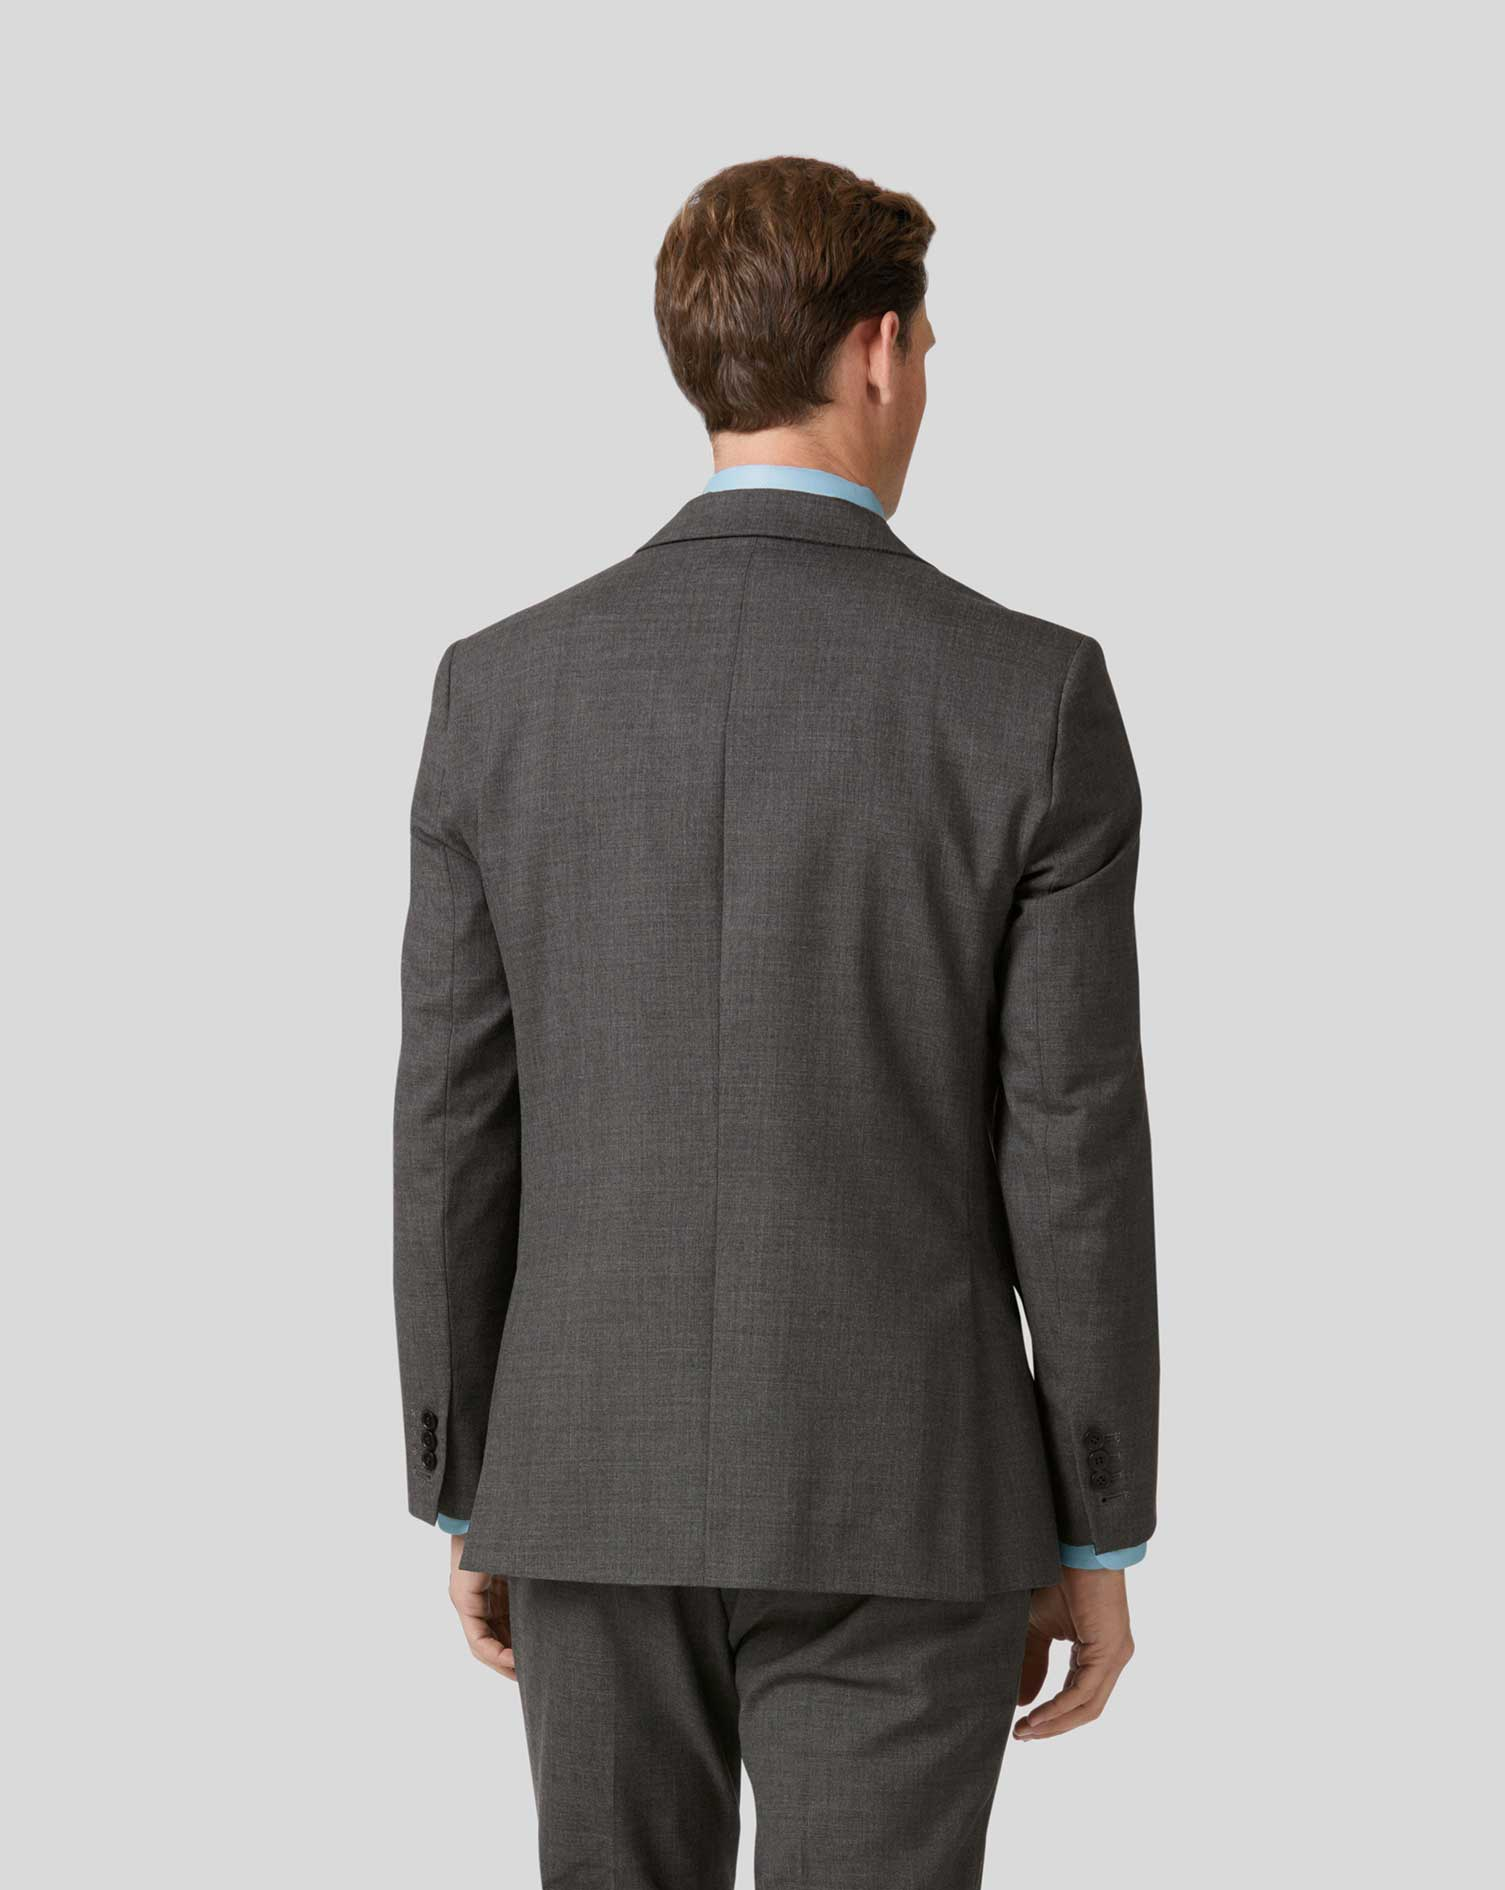 Slim Fit Businessanzug-Sakko aus Merino in Grau